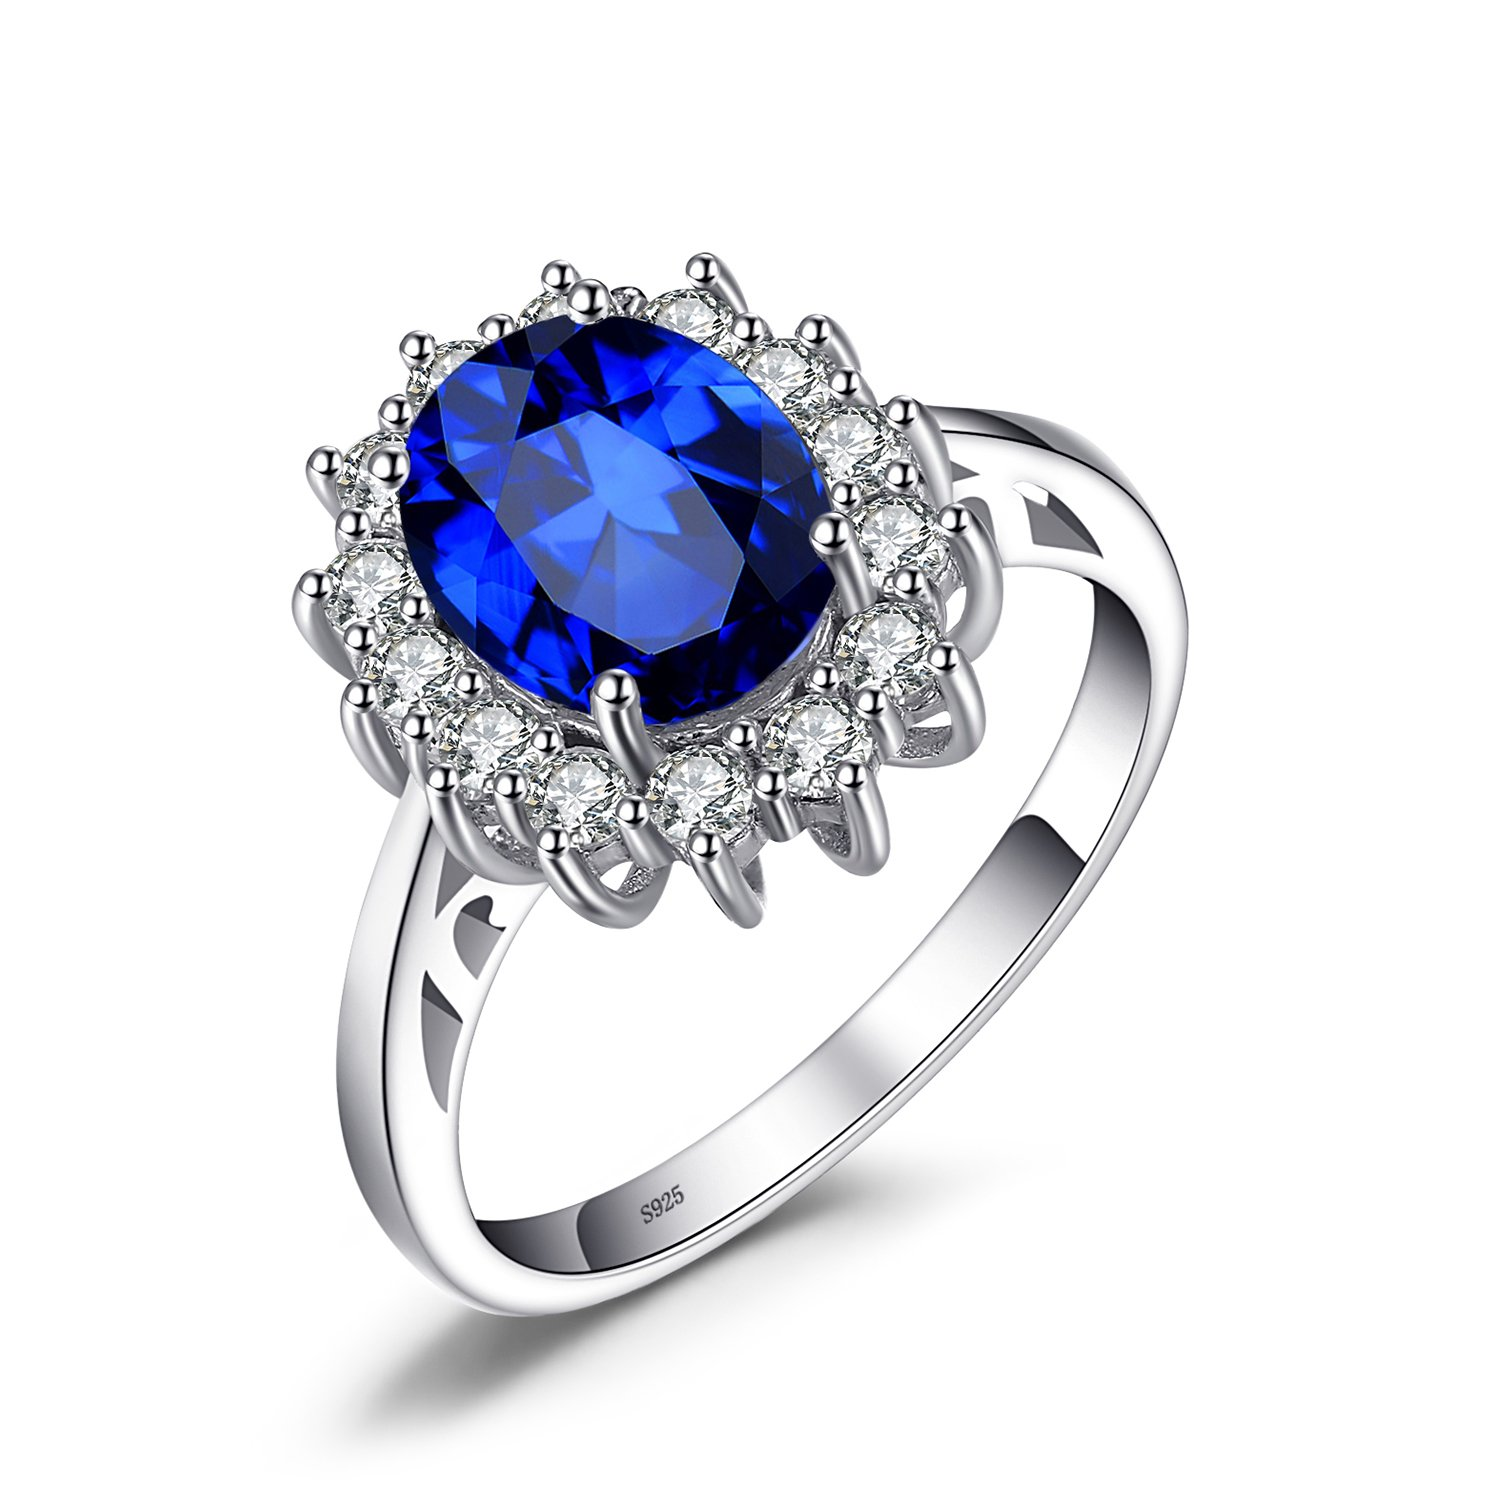 image royal rings cut ring untreated carats cushion blue tanzanite